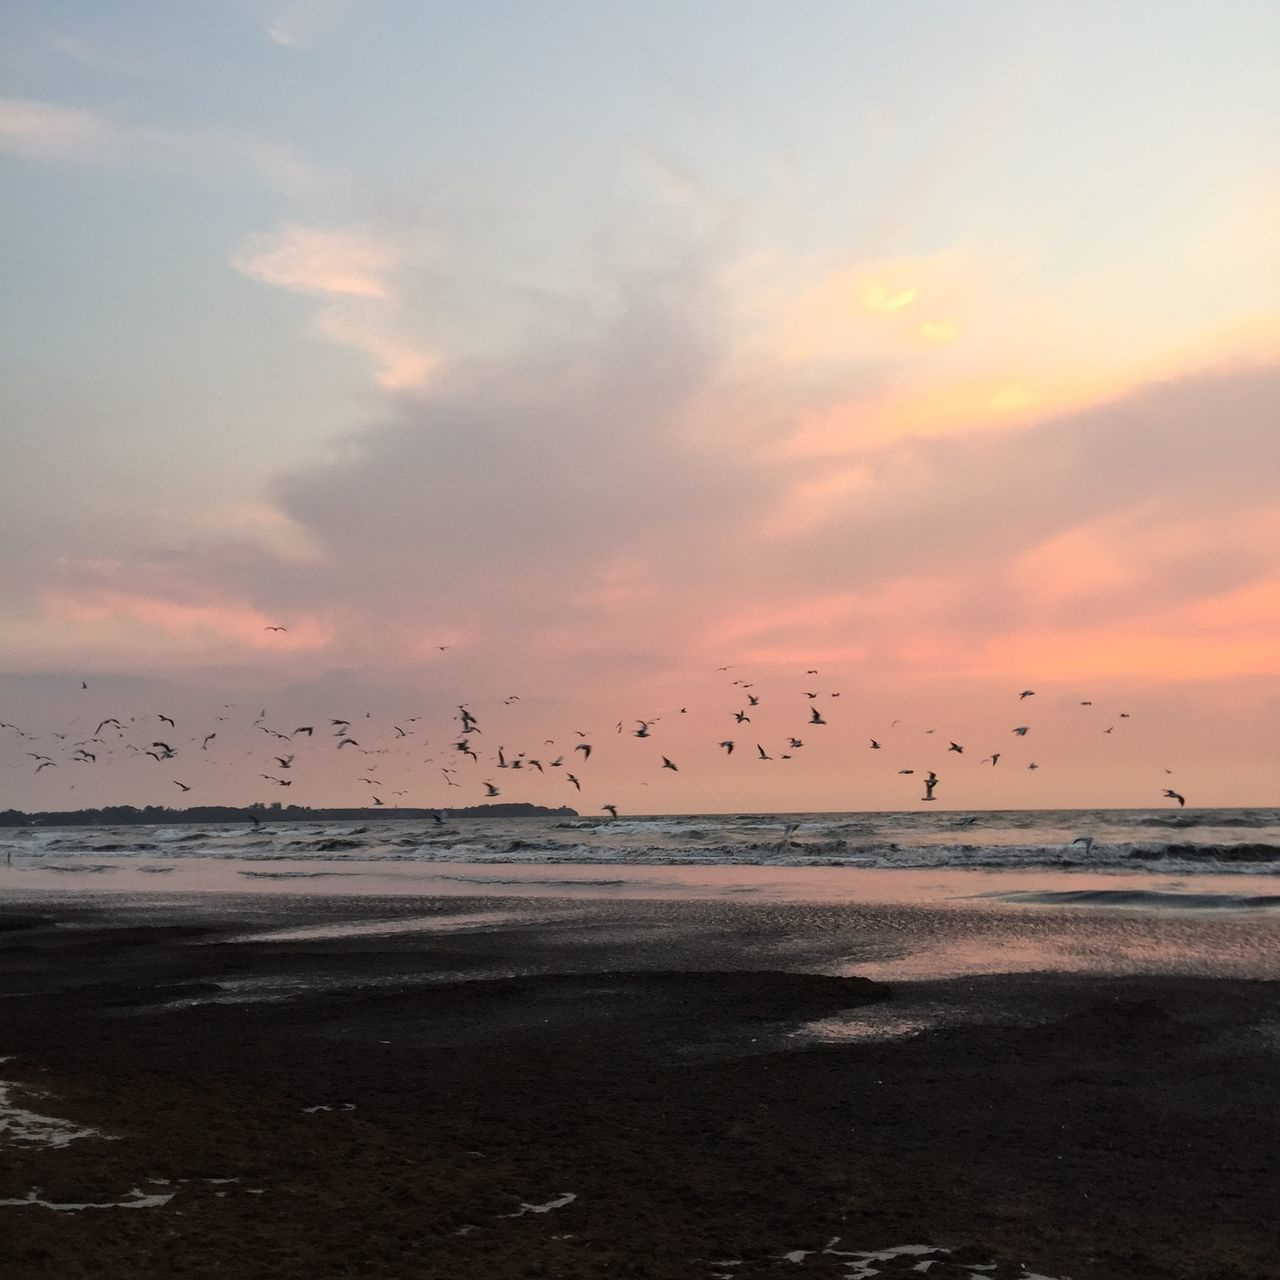 Birds Flying Over Sea Against Cloudy Sky During Sunset